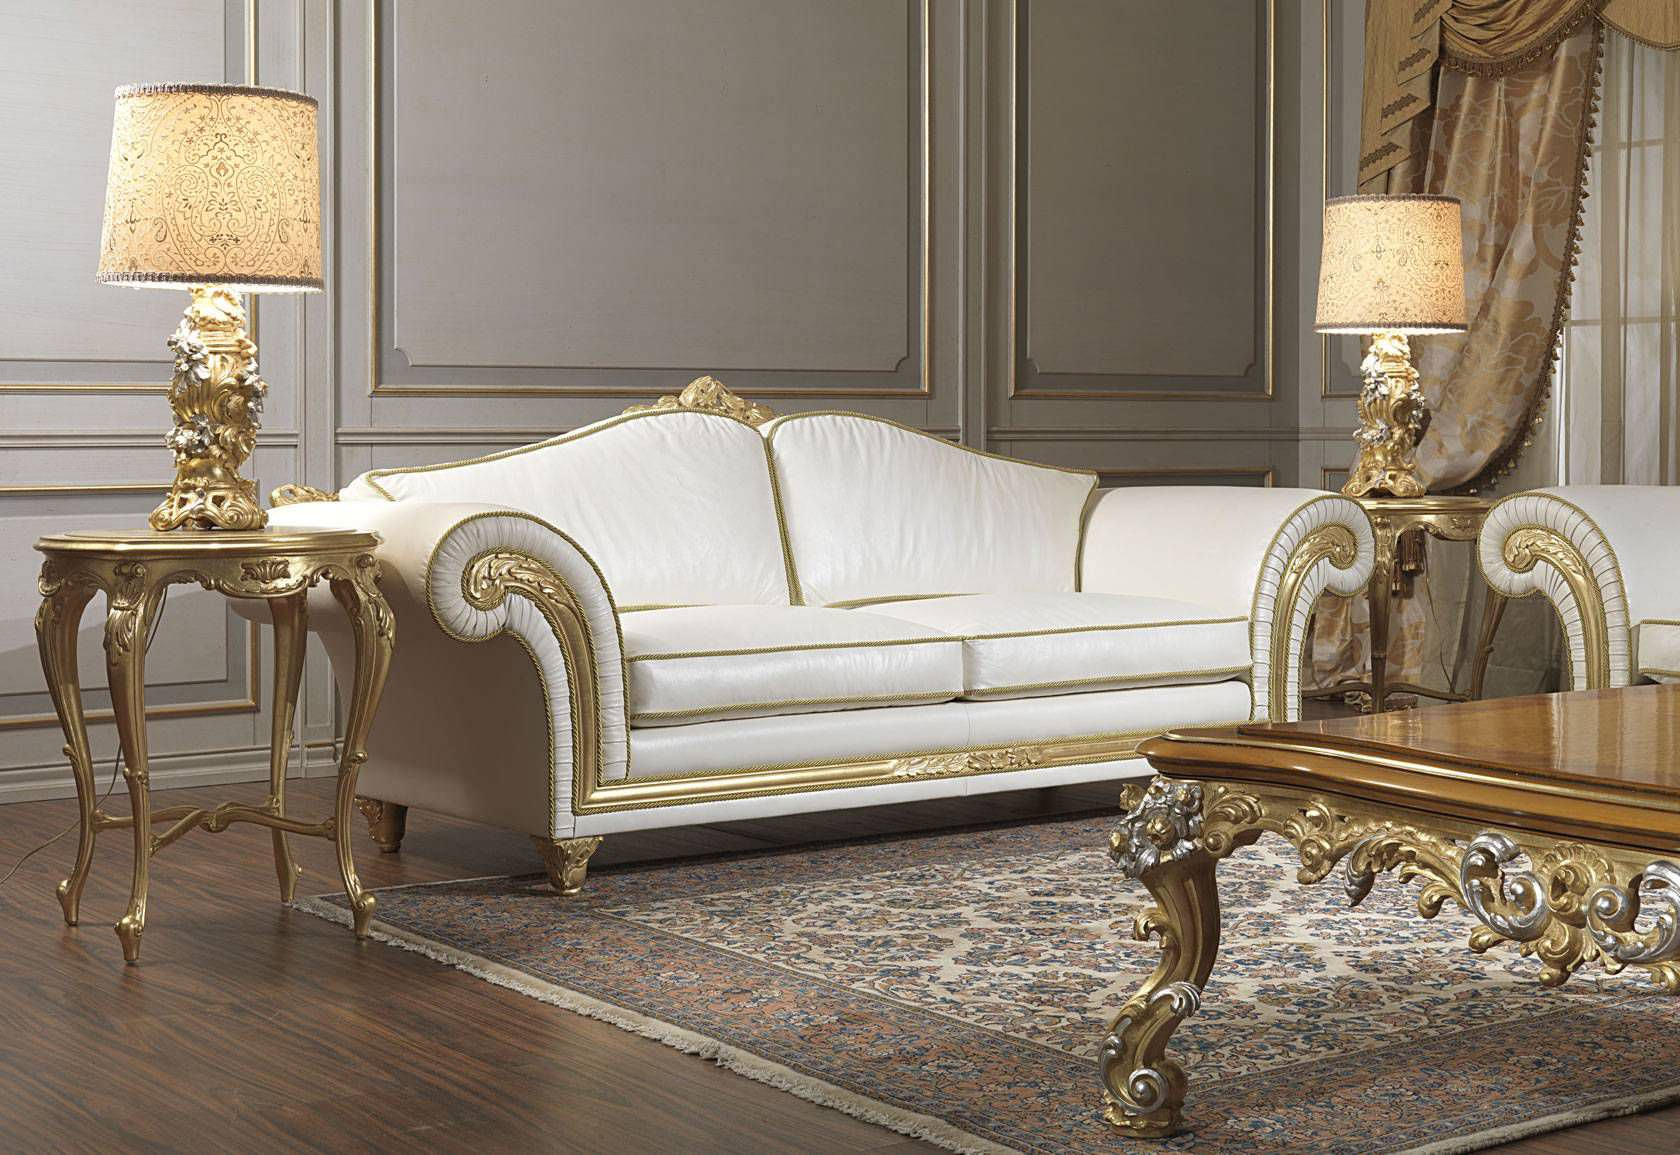 classic furniture classic sofa / leather / 2-seater / white imperial vimercati meda luxury classic KHJWGNF